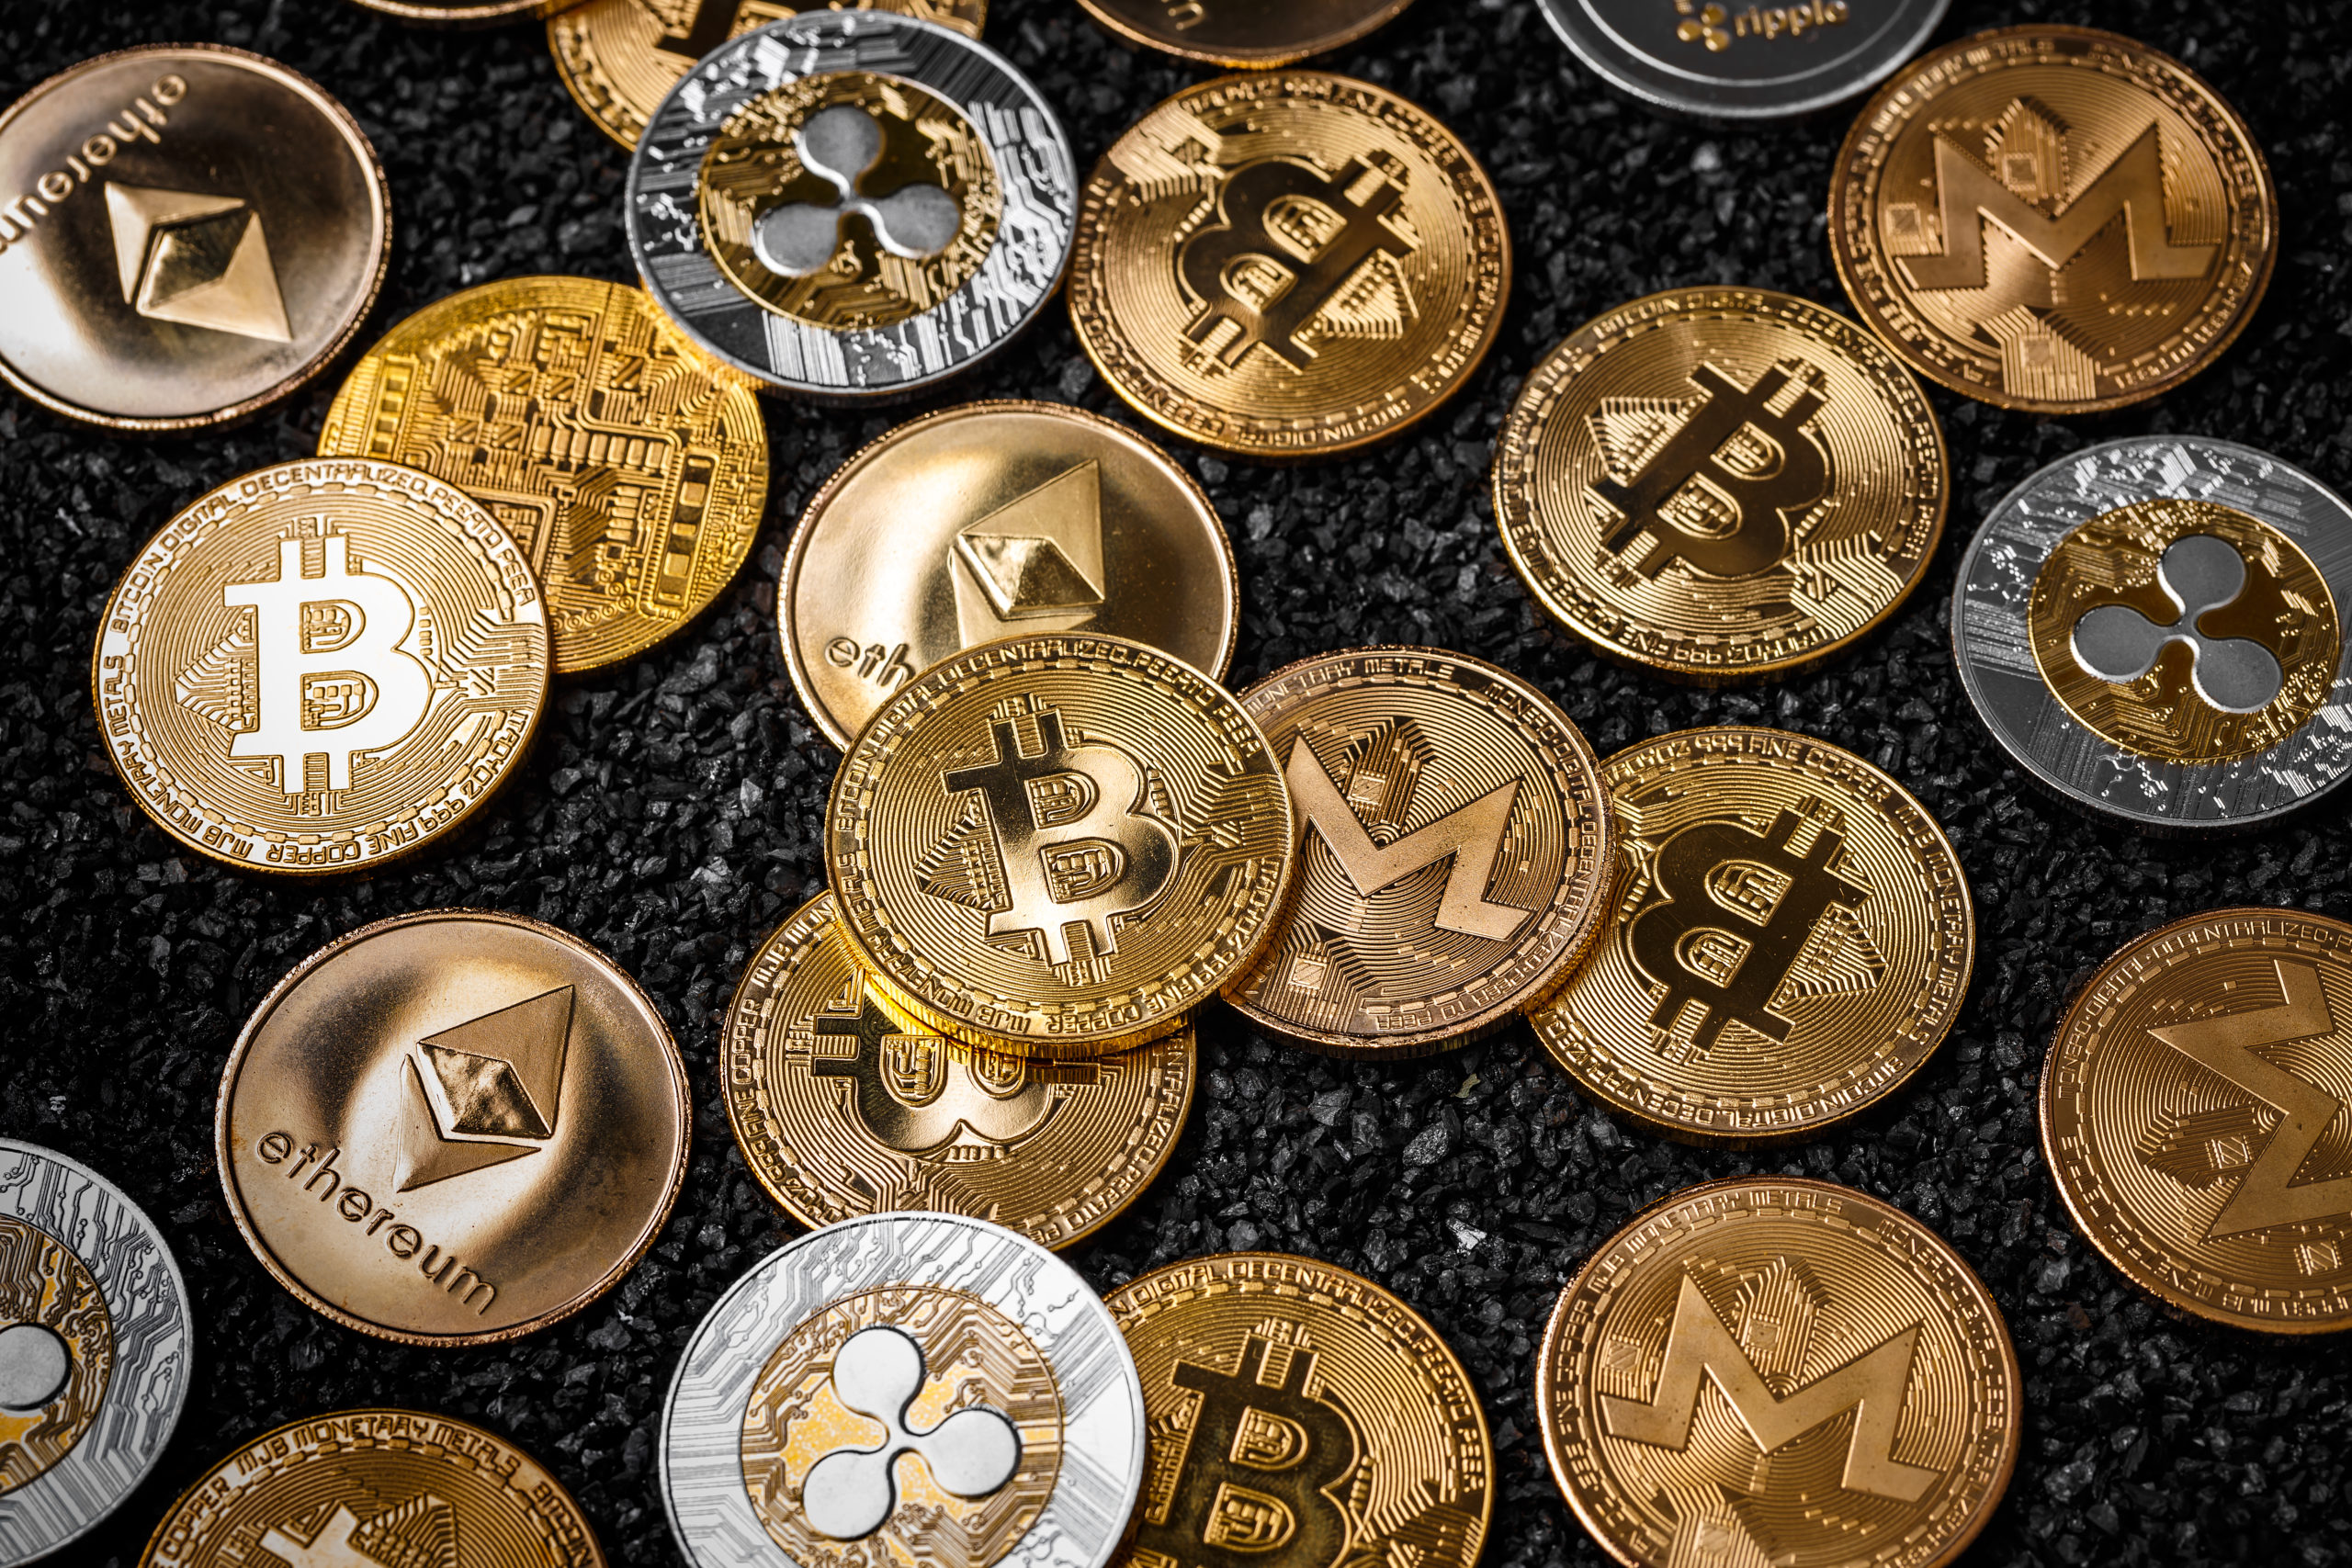 Top 33 Cryptocurrency Described In Four Words Or Less [INFOGRAPHIC]